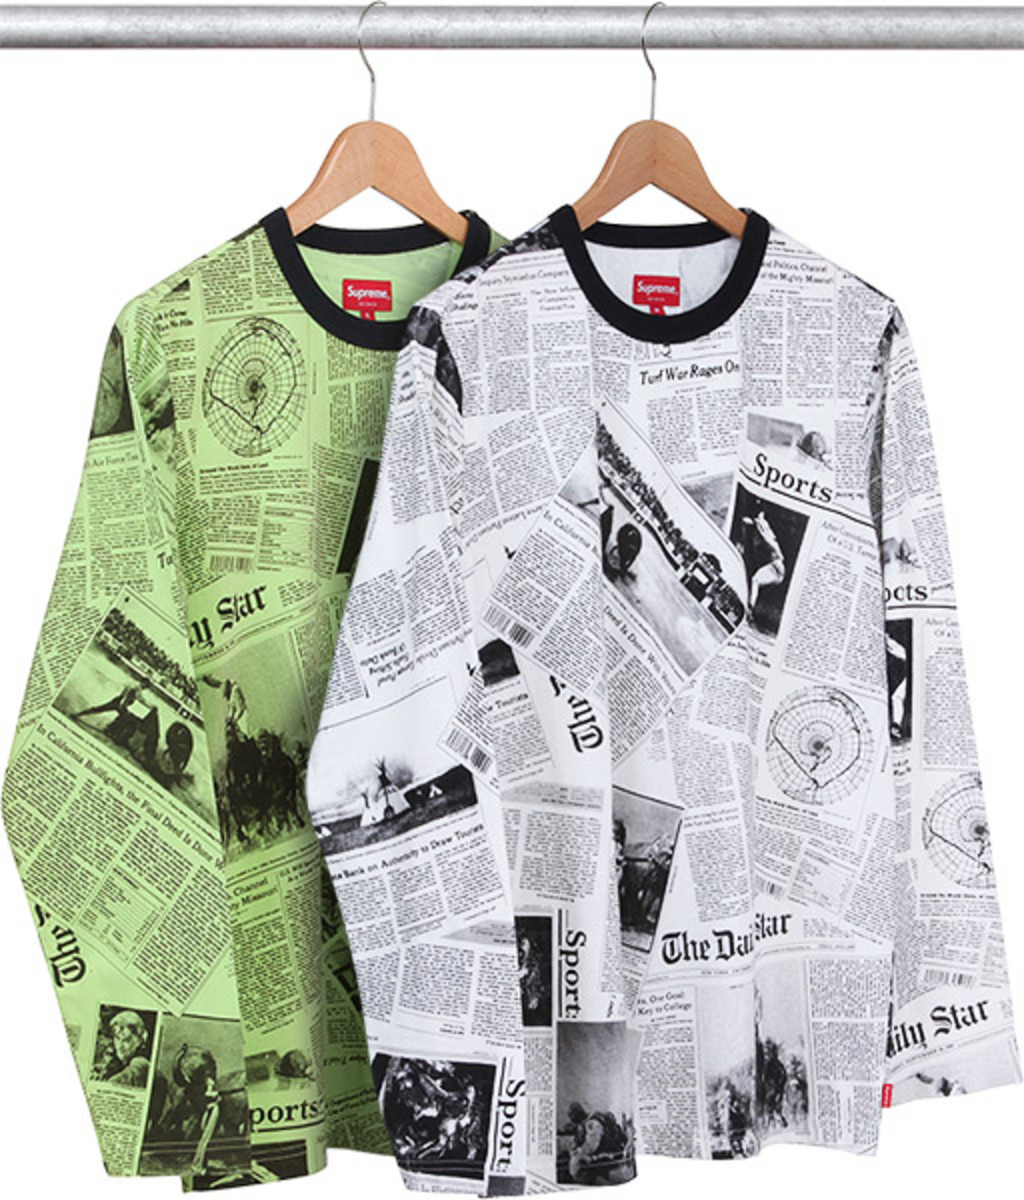 supreme-fall-winter-2012-apparel-23